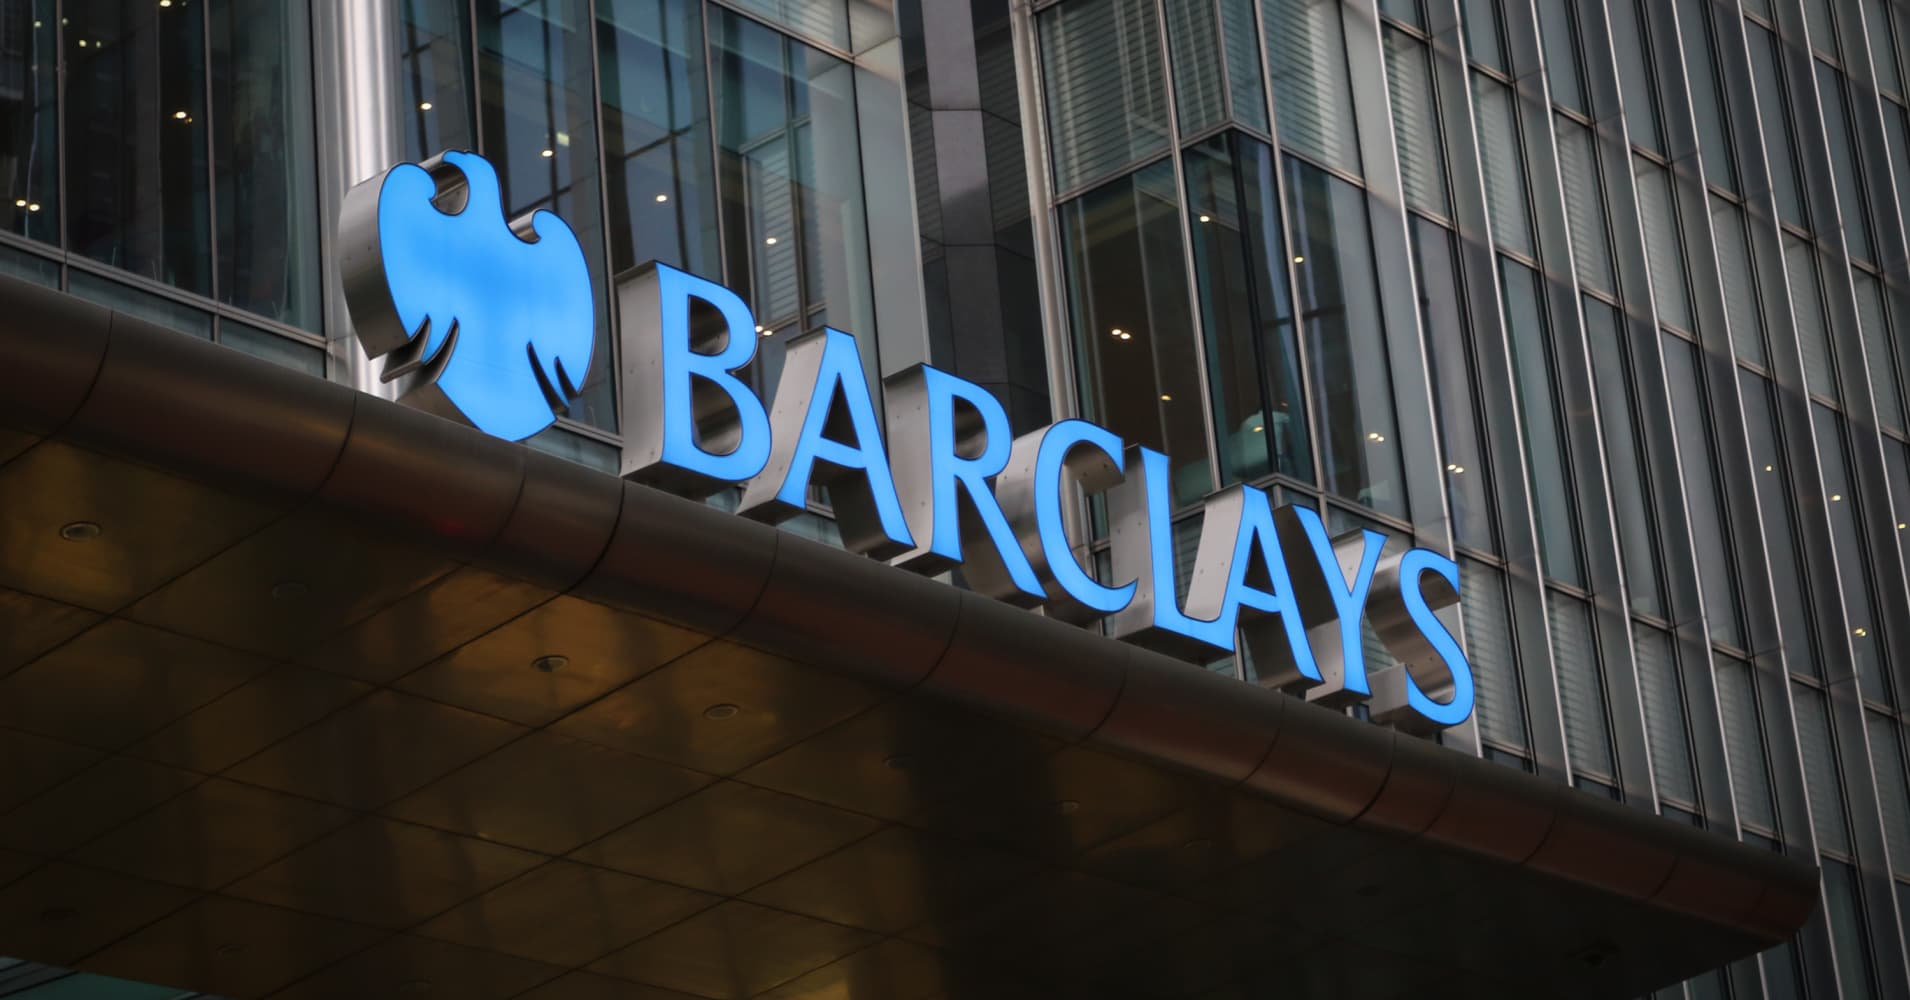 Barclays Quotes: British Banks Could Benefit From US-China Trade War